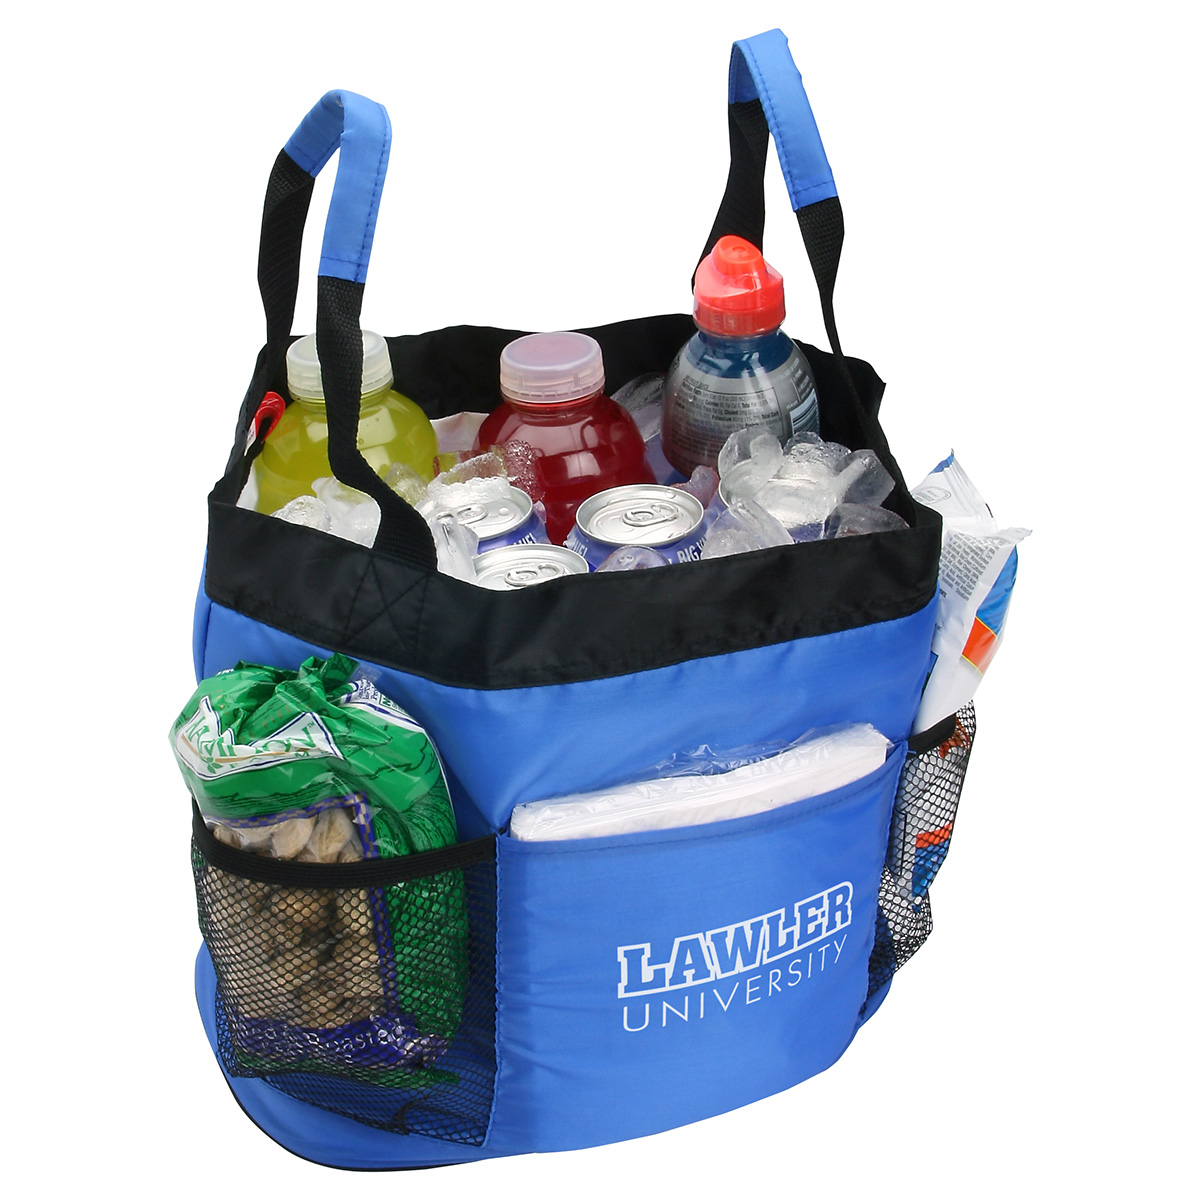 Alfresco Insulated Bag, WBA-AB11 - 1 Colour Imprint